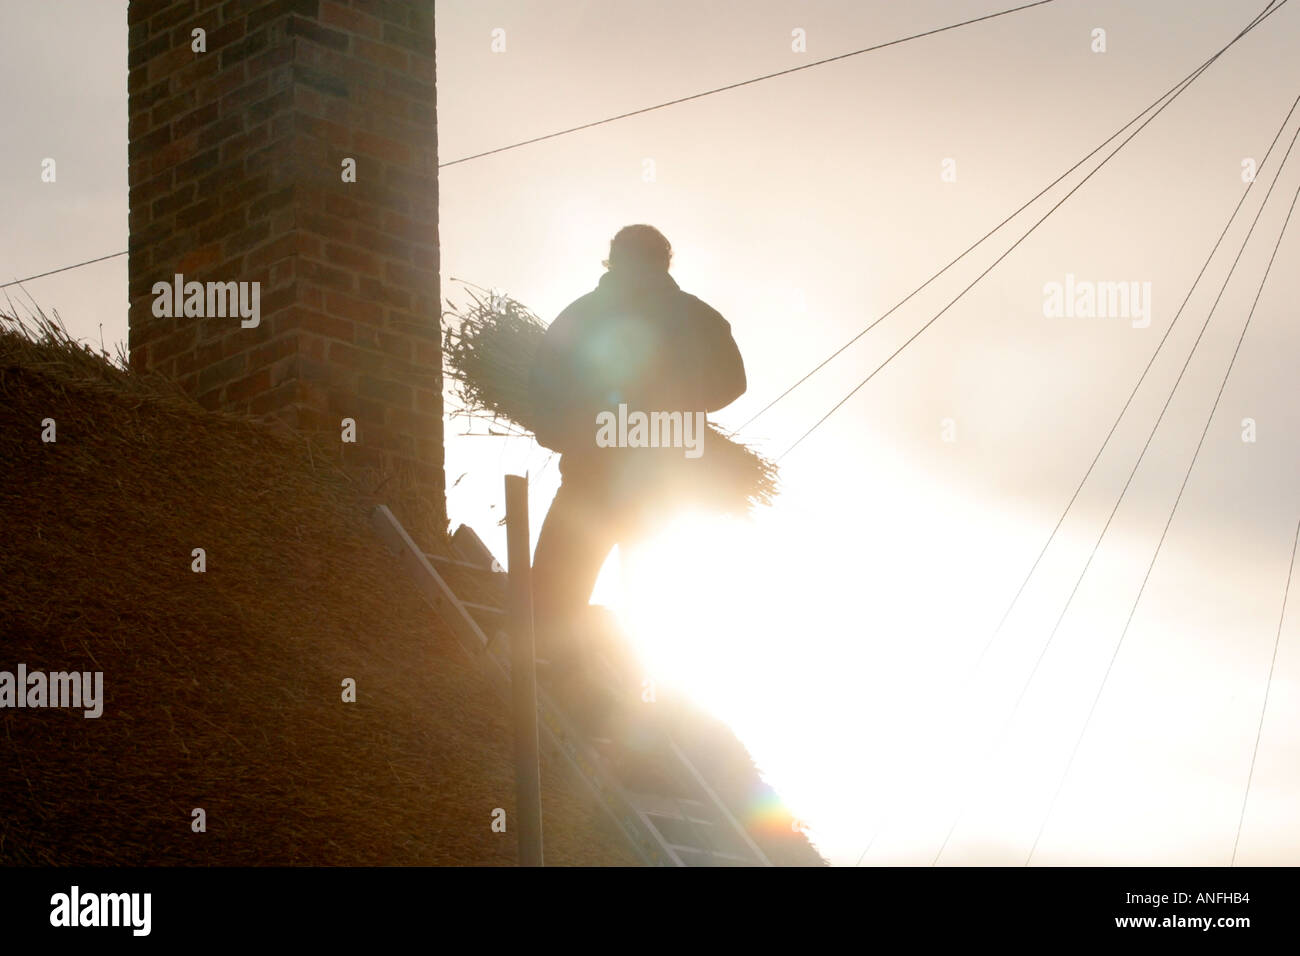 Thatcher roofing in the evening sunlight - Stock Image